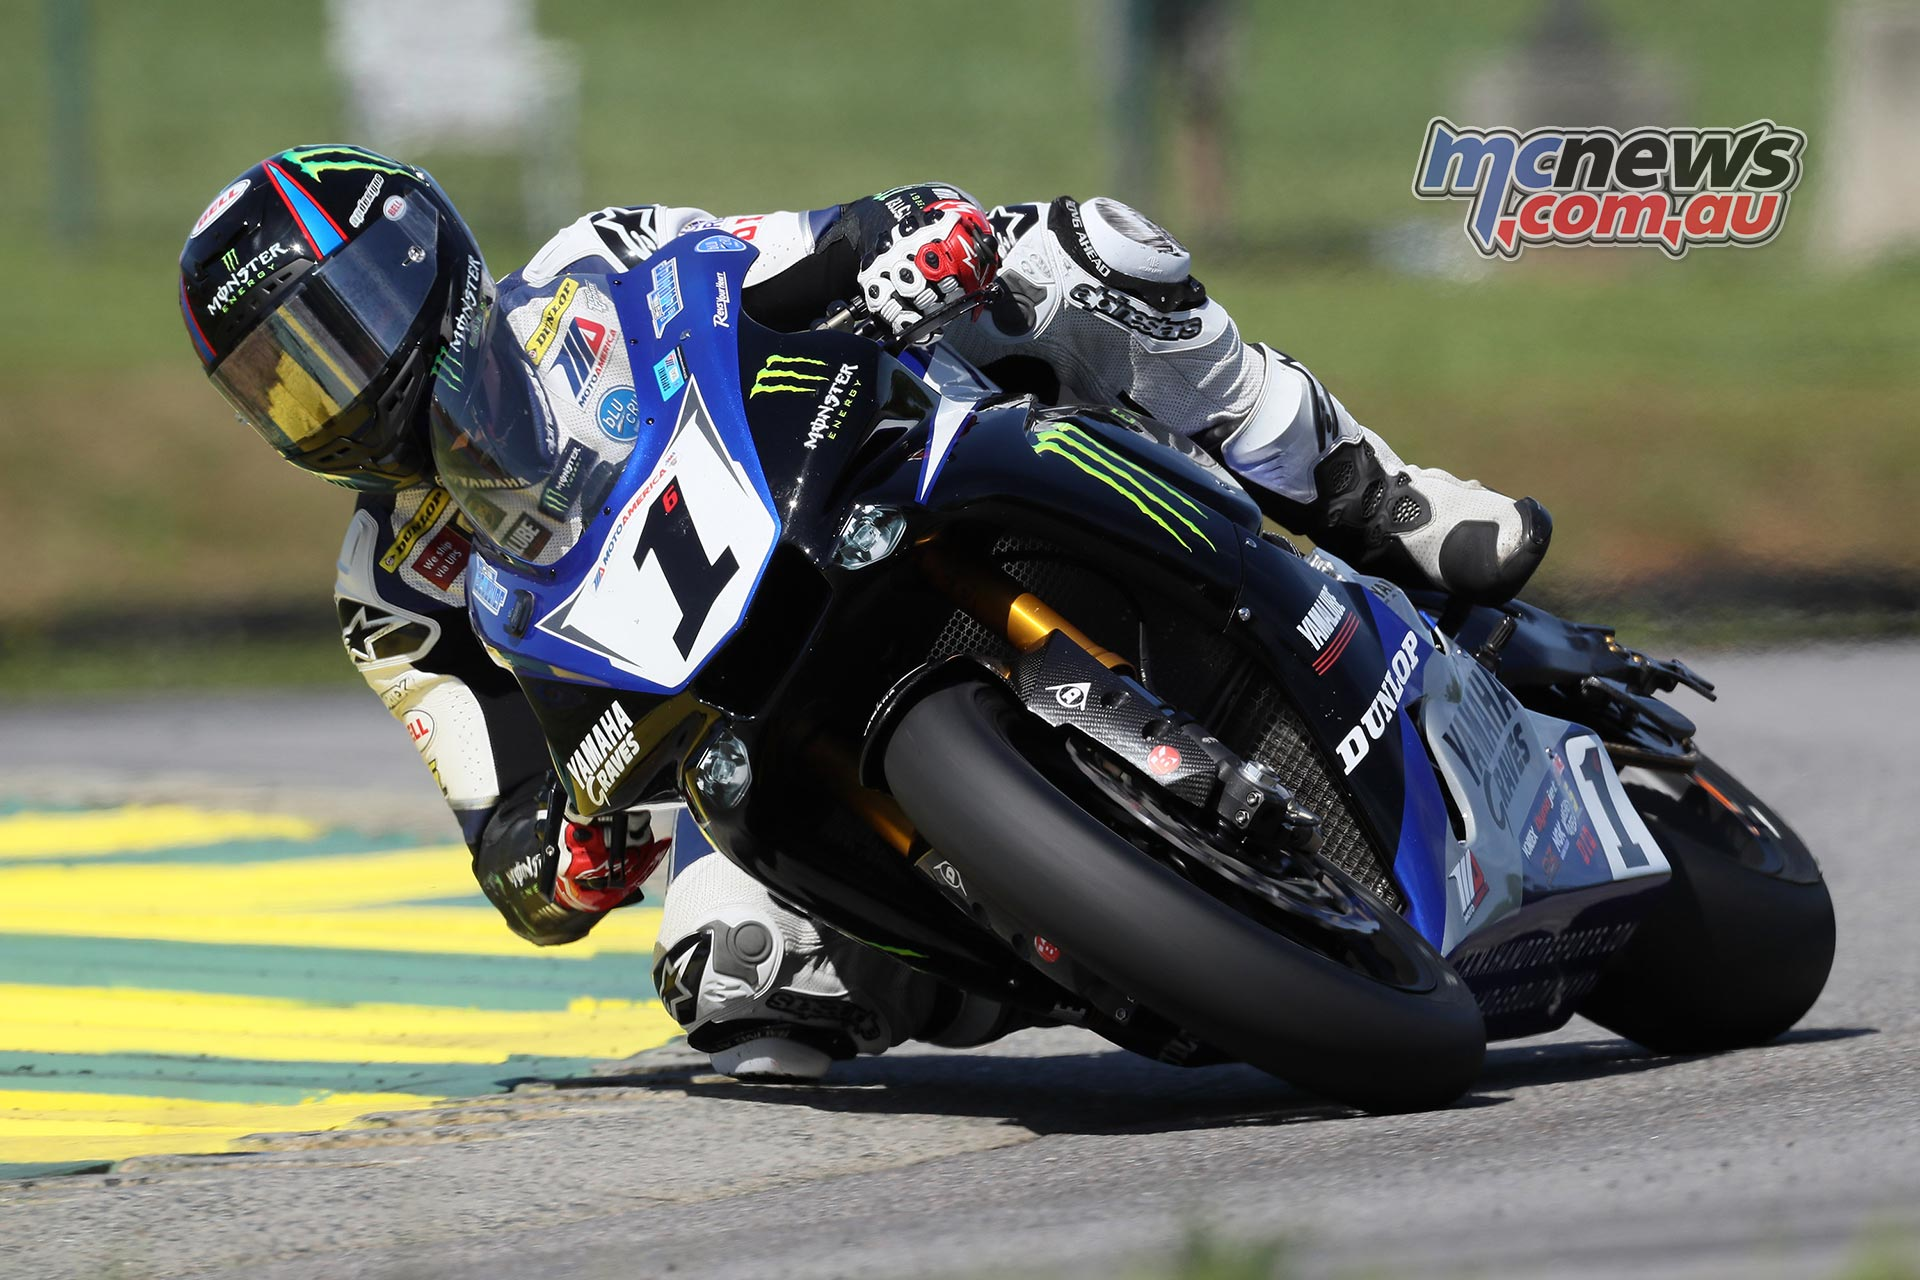 Defending Champion Cameron Beaubier earned his third Superbike pole position in a row on Saturday at VIRginia International Raceway. Photography by Brian J. Nelson.